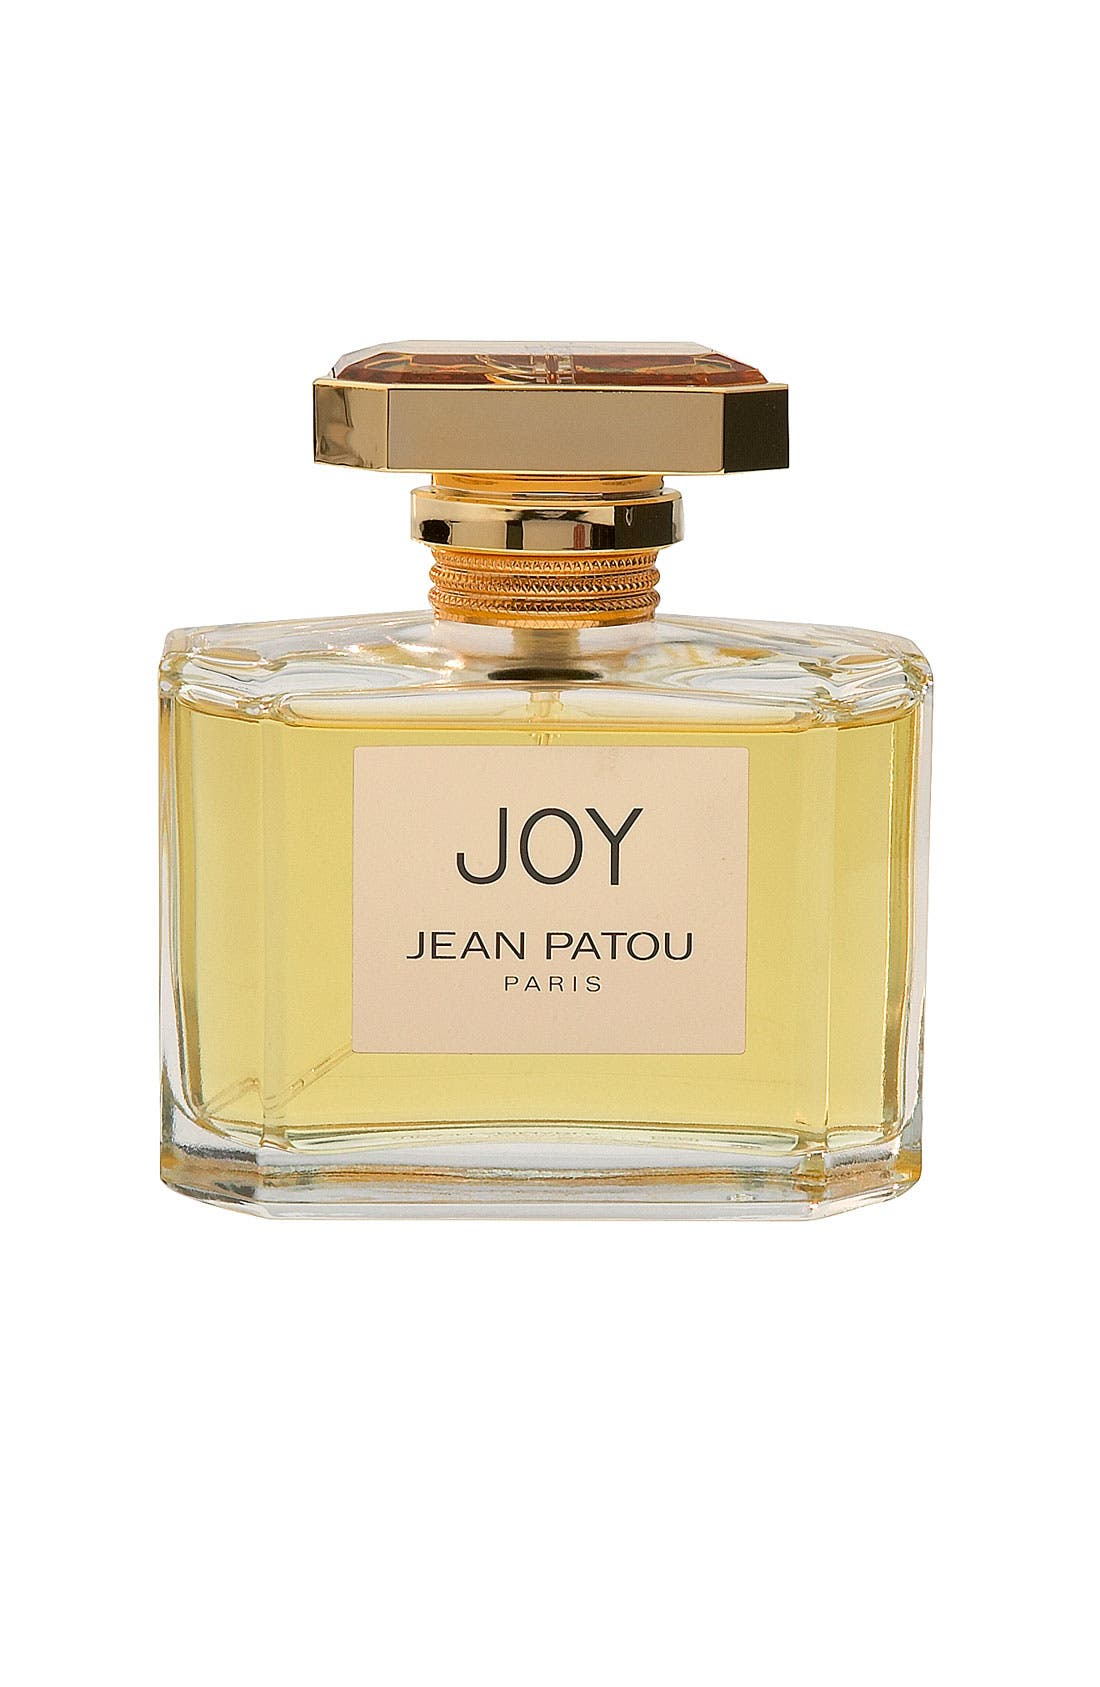 Joy by Jean Patou Eau de Parfum Jewel Spray